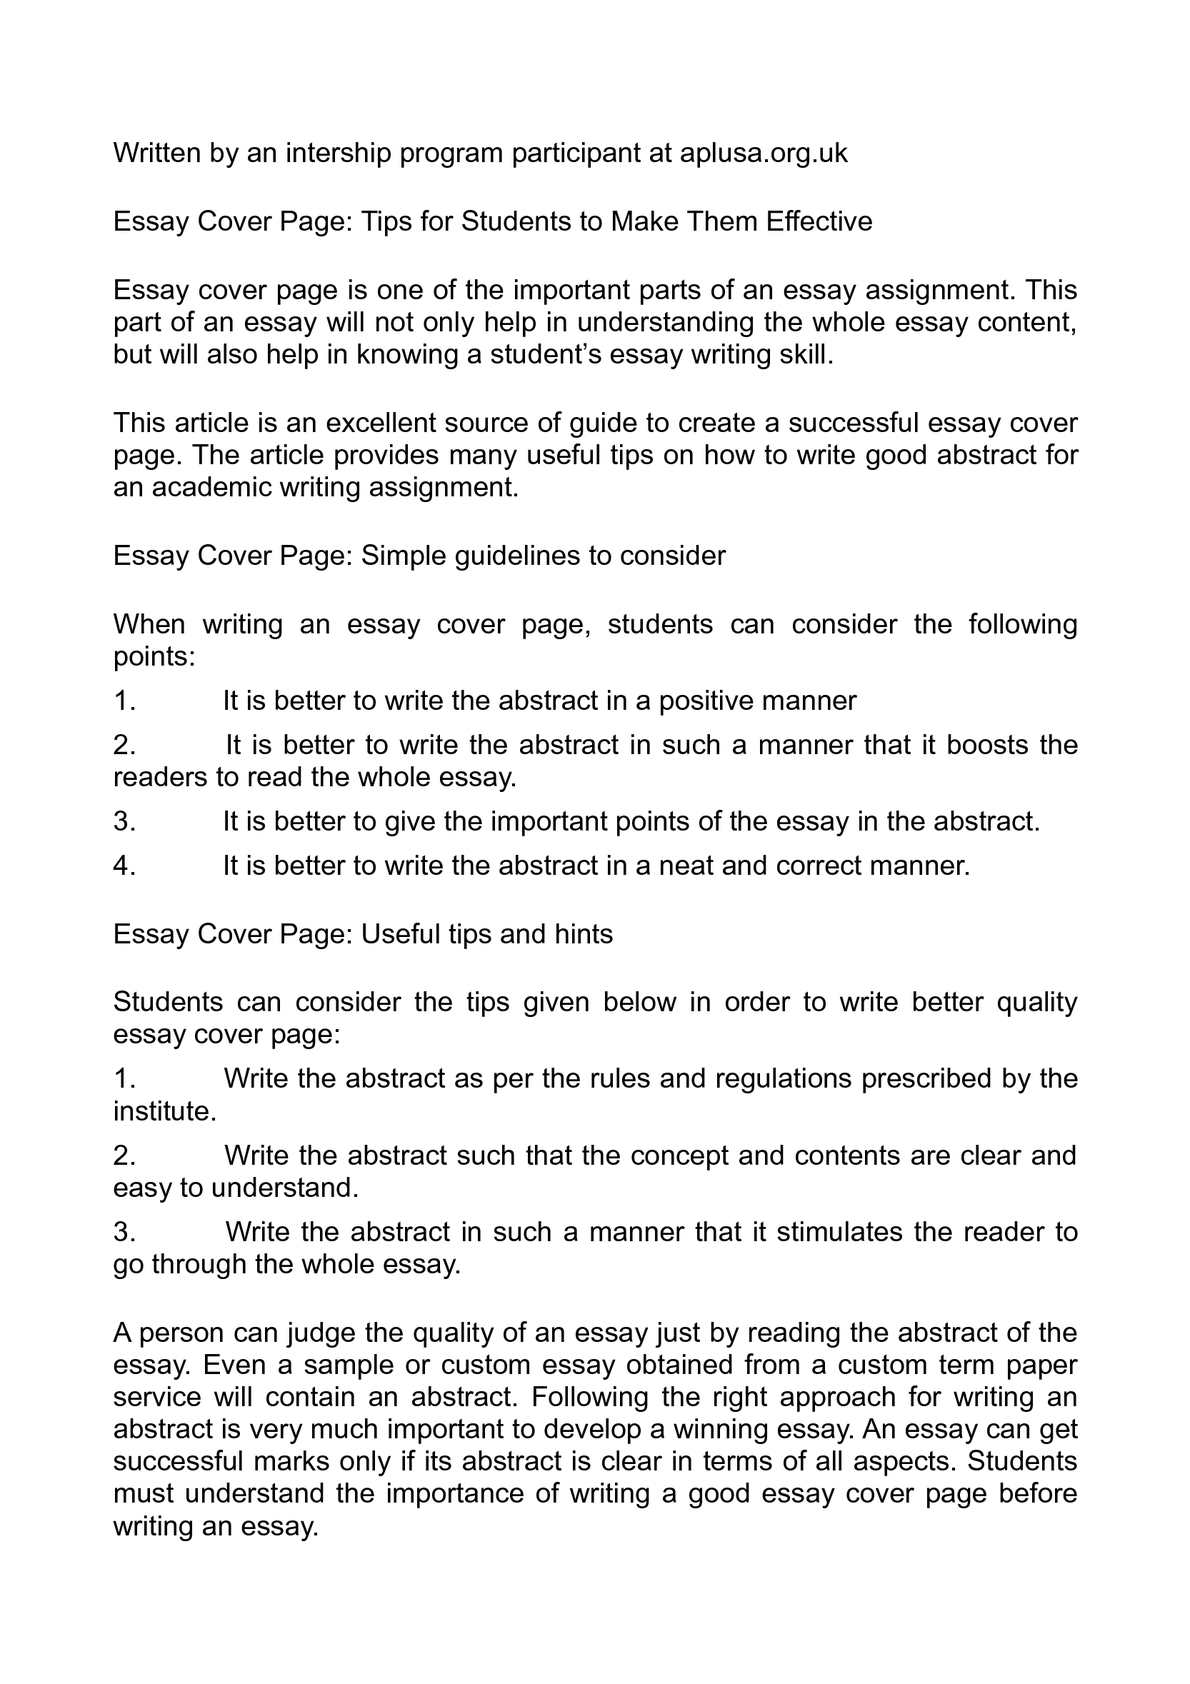 026 P1 Tips To Write Good Essay Marvelous A Narrative Persuasive In Exam Full